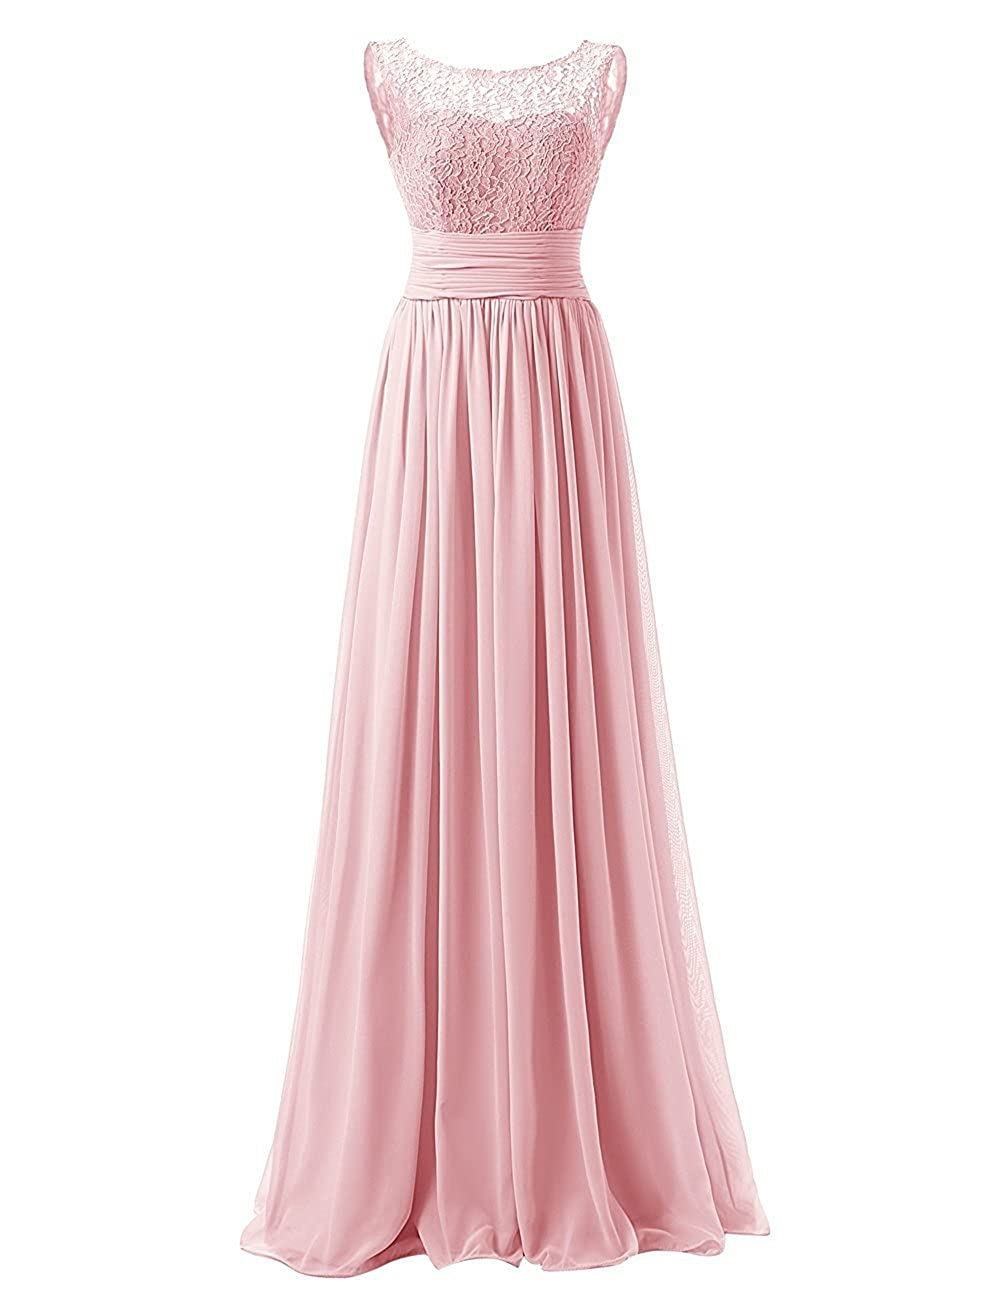 a2665d56c Honey Qiao Women's Scoop Lace Bridesmaid Dresses Long Chiffon Evening Gown  at Amazon Women's Clothing store: